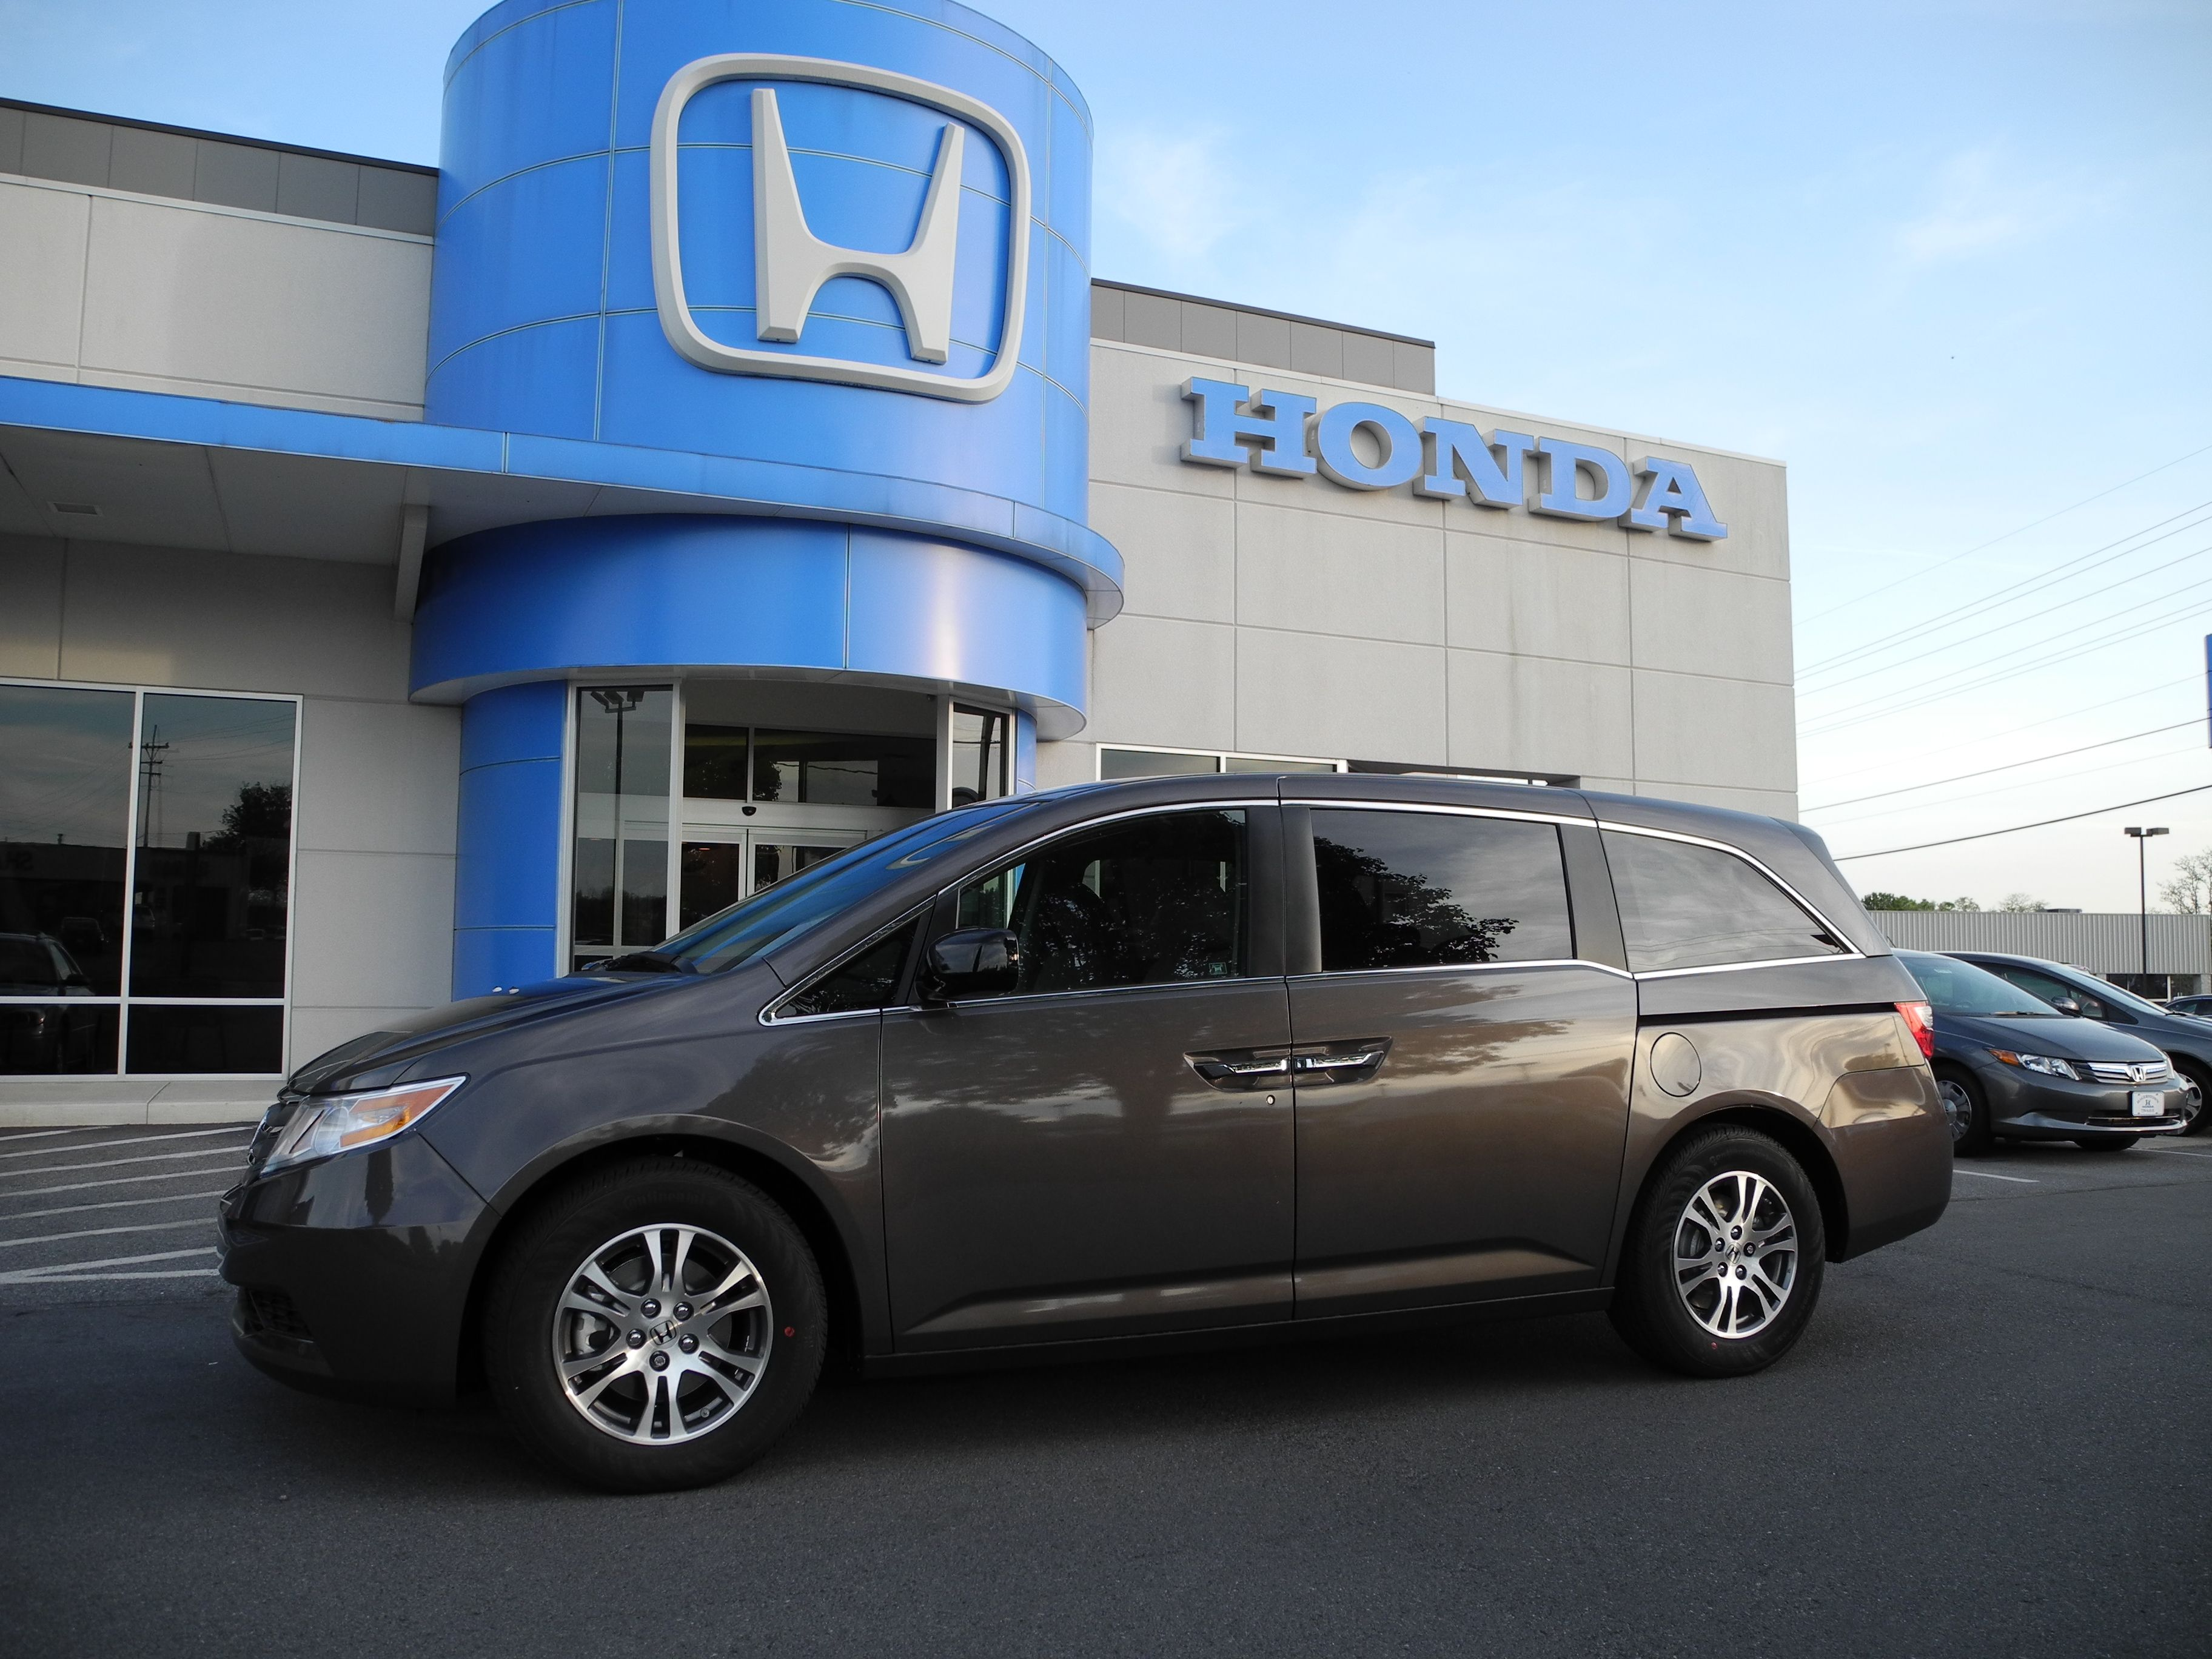 New Honda Honda 2012 5fnrl5h46cb098542 Inventory Hagerstown Honda New And Used Car Dealership 2012 Honda Odyssey New Honda New Honda Odyssey